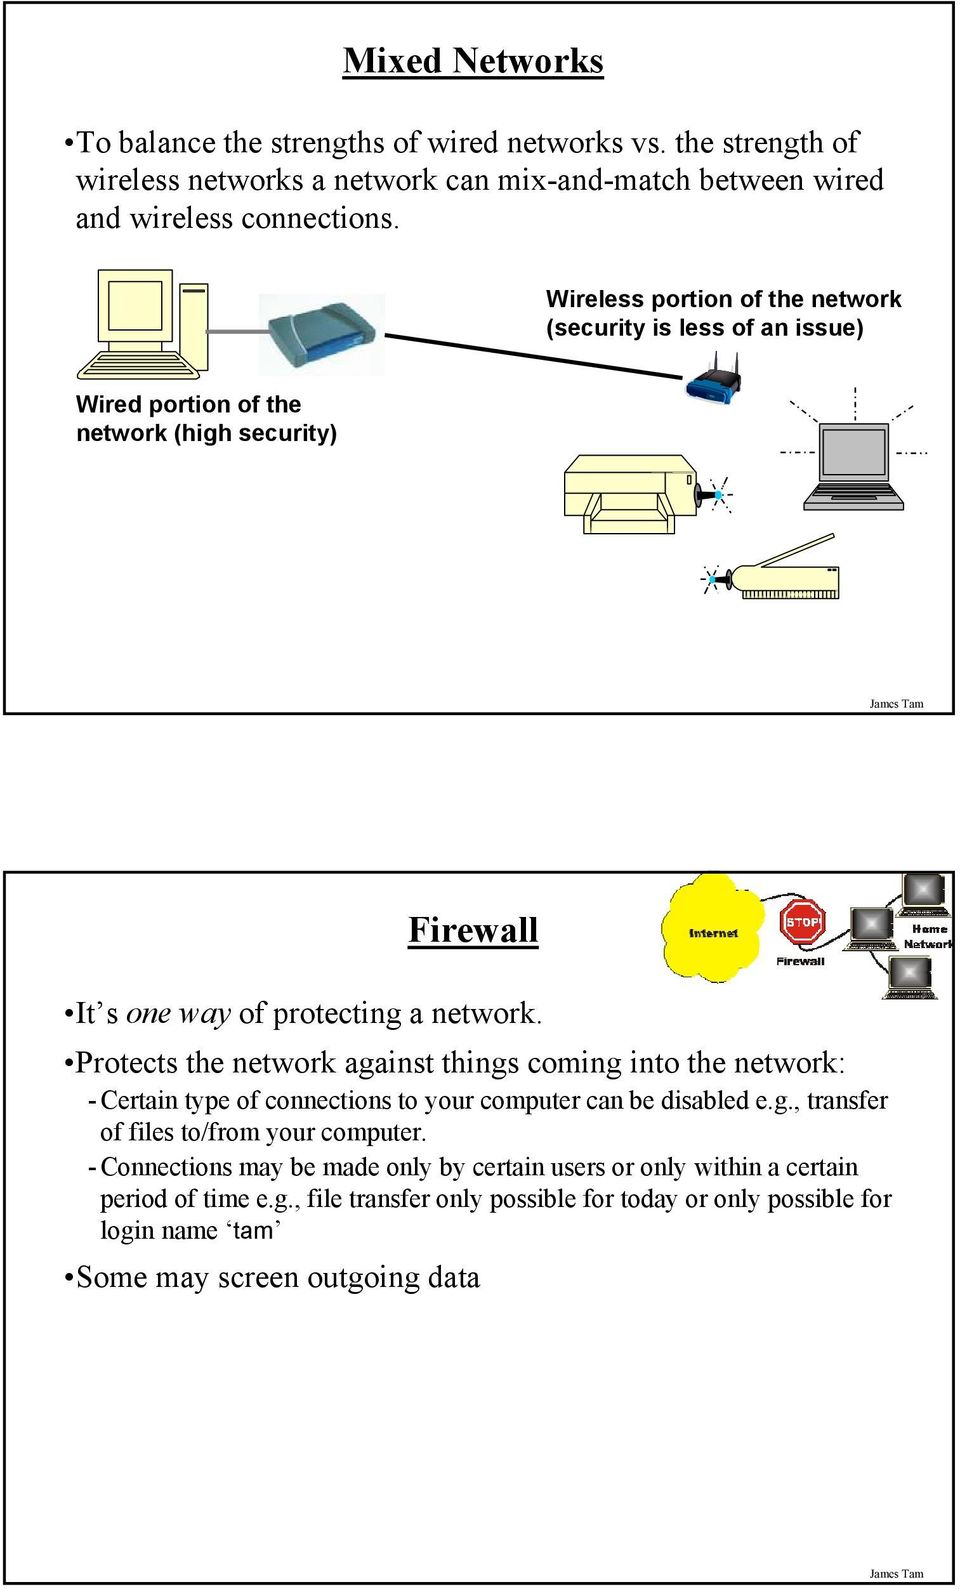 Protects the network against things coming into the network: - Certain type of connections to your computer can be disabled e.g., transfer of files to/from your computer.